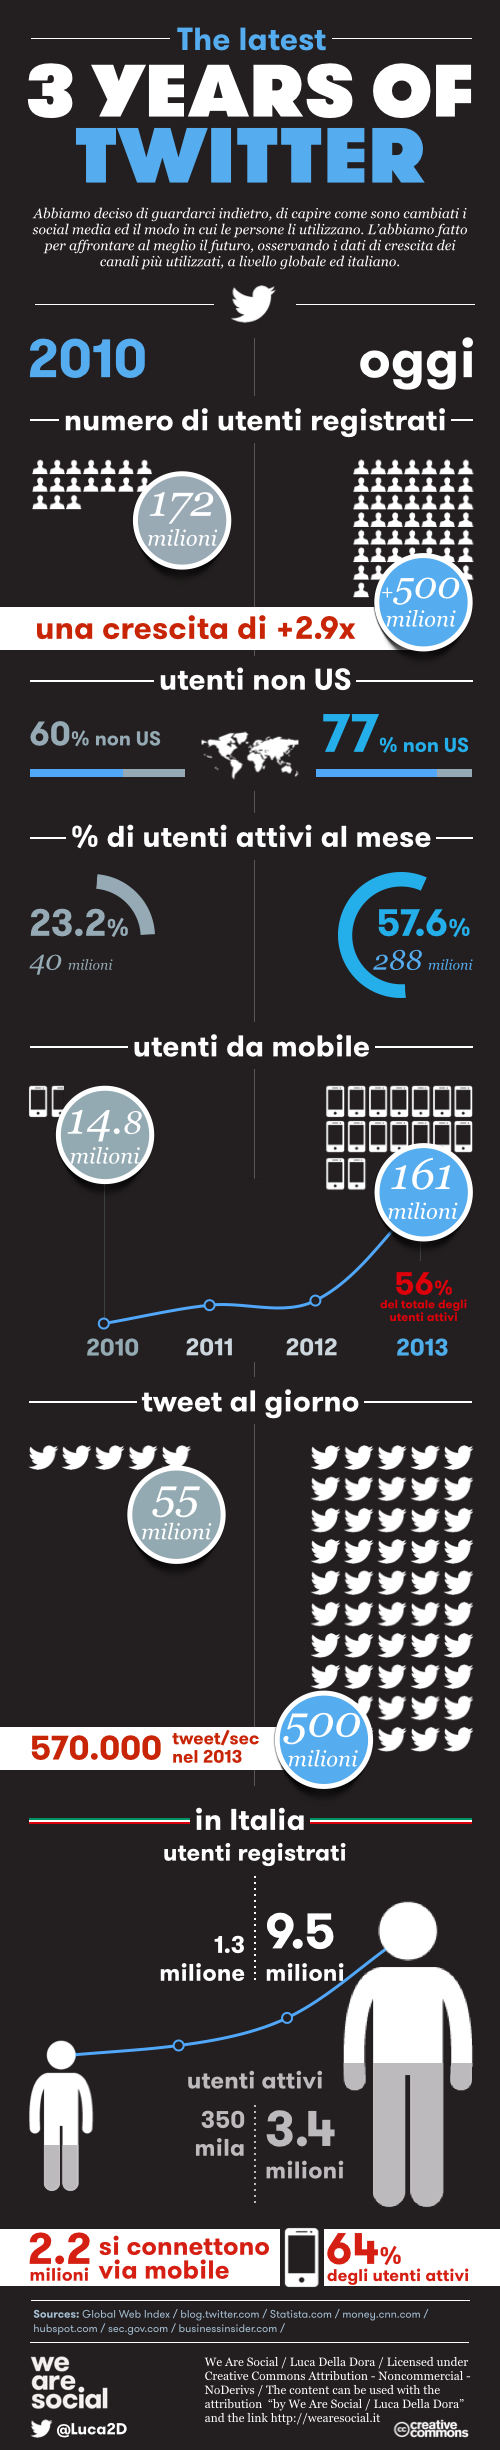 [INFOGRAPHIC] The latest 3 years of Twitter